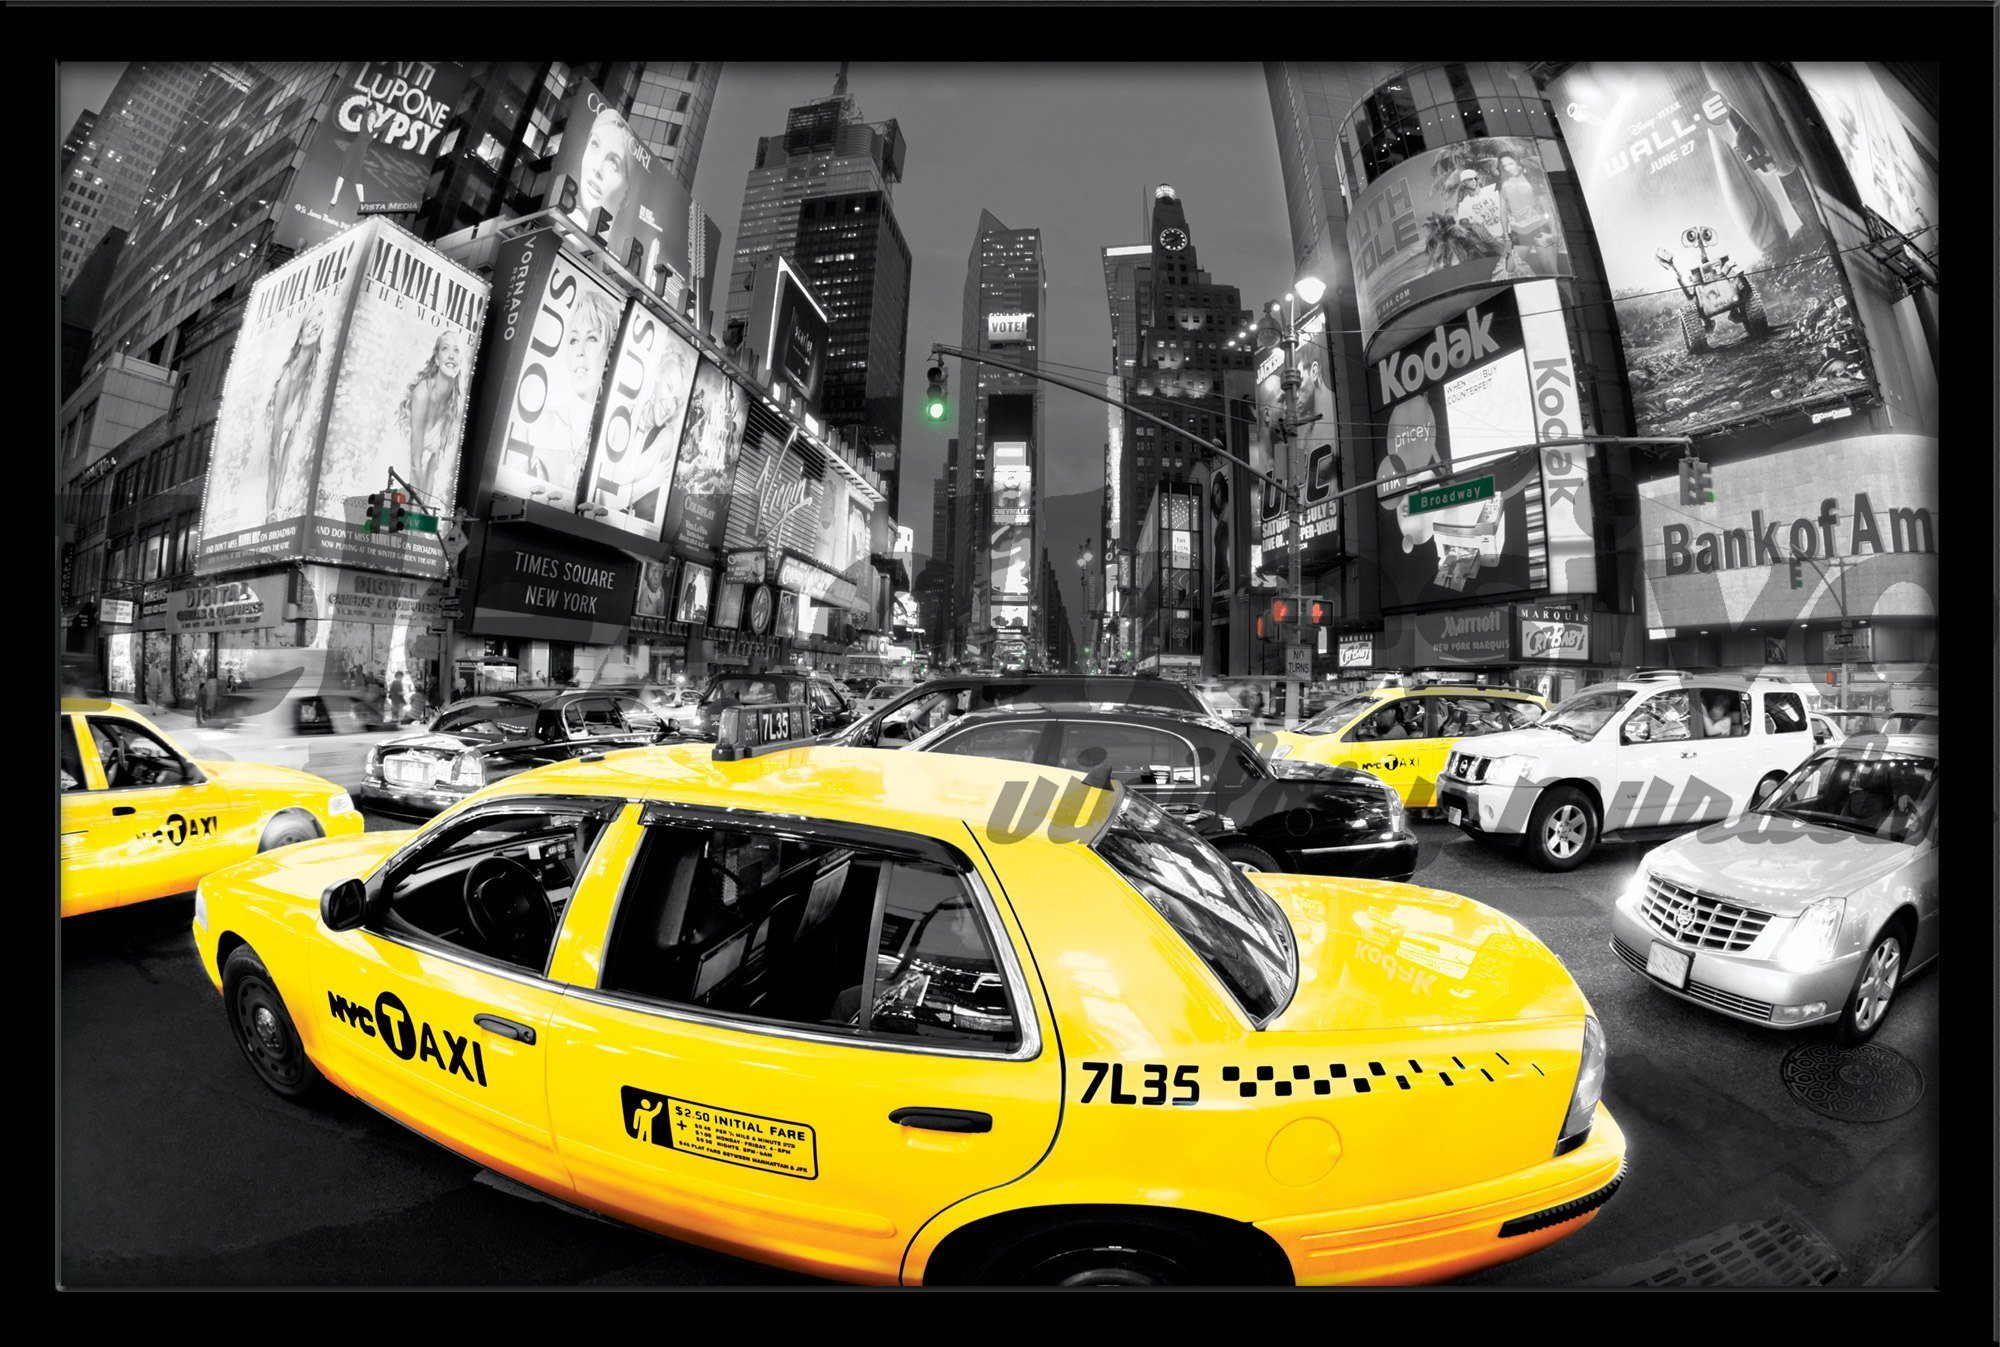 Wandtattoos: Taxi in Times Square